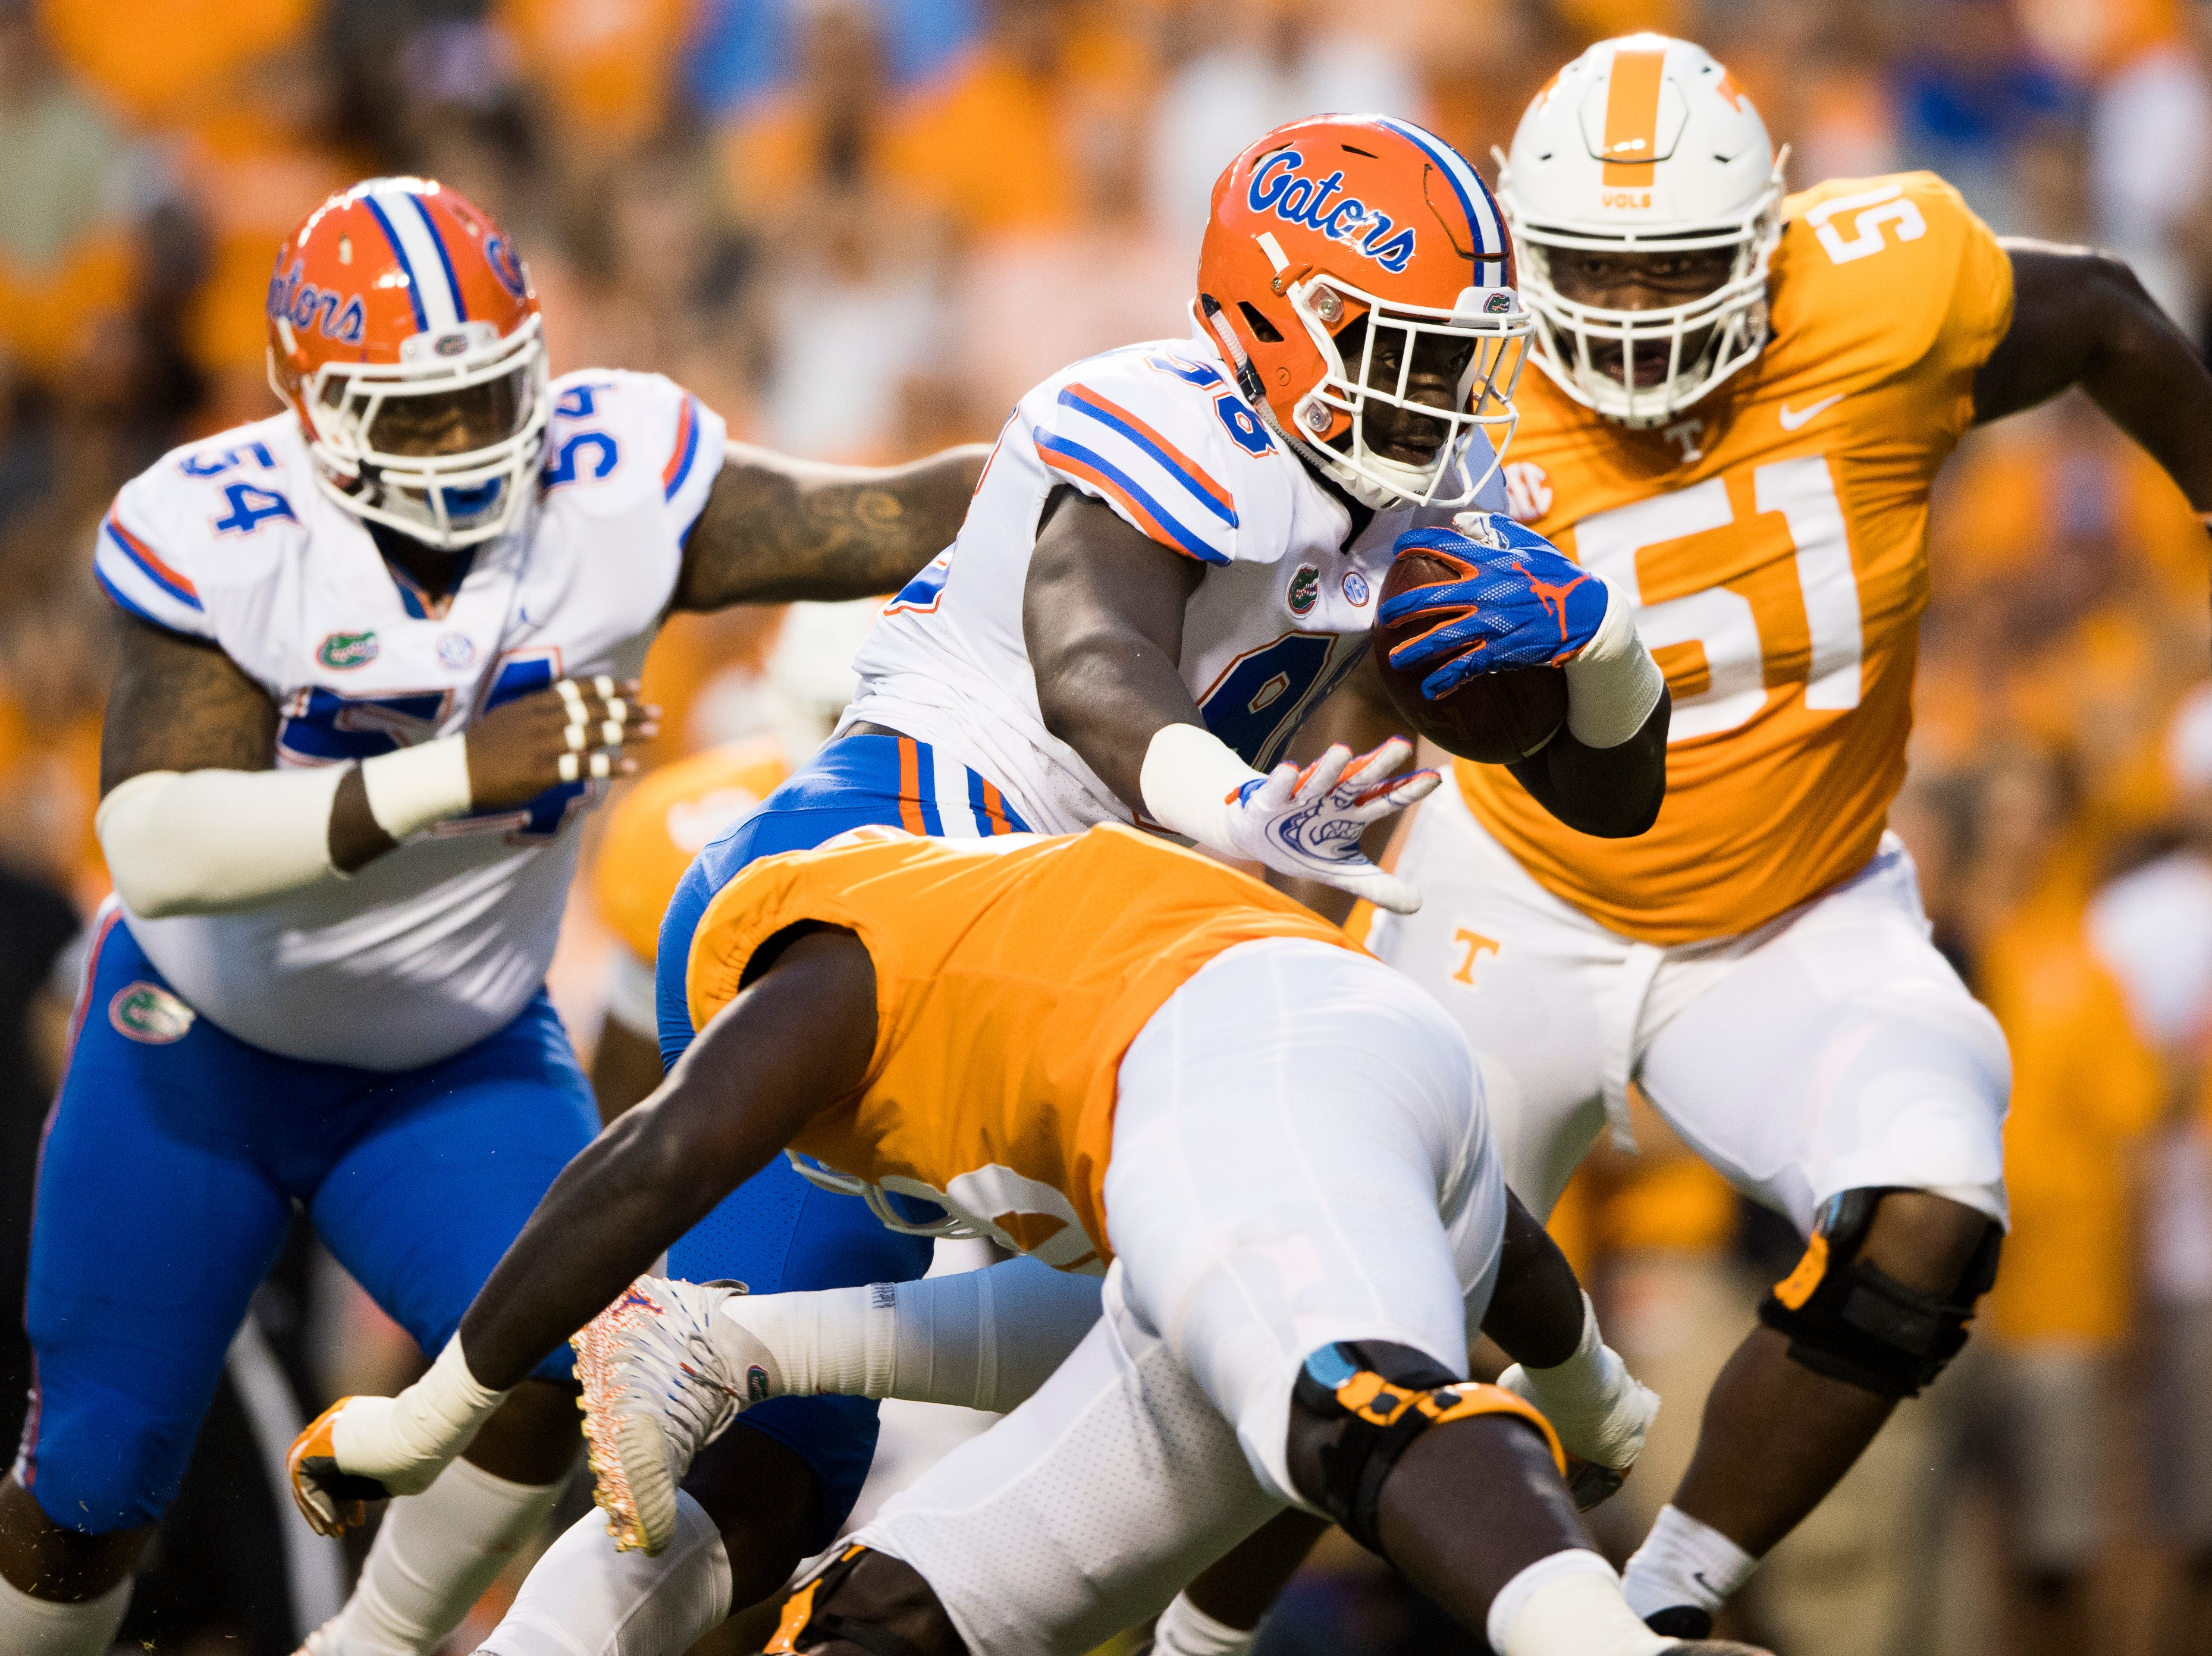 Florida defensive lineman Luke Ancrum (98) pushes away the Tennessee defense during a game between Tennessee and Florida at Neyland Stadium in Knoxville, Tennessee on Saturday, September 22, 2018.